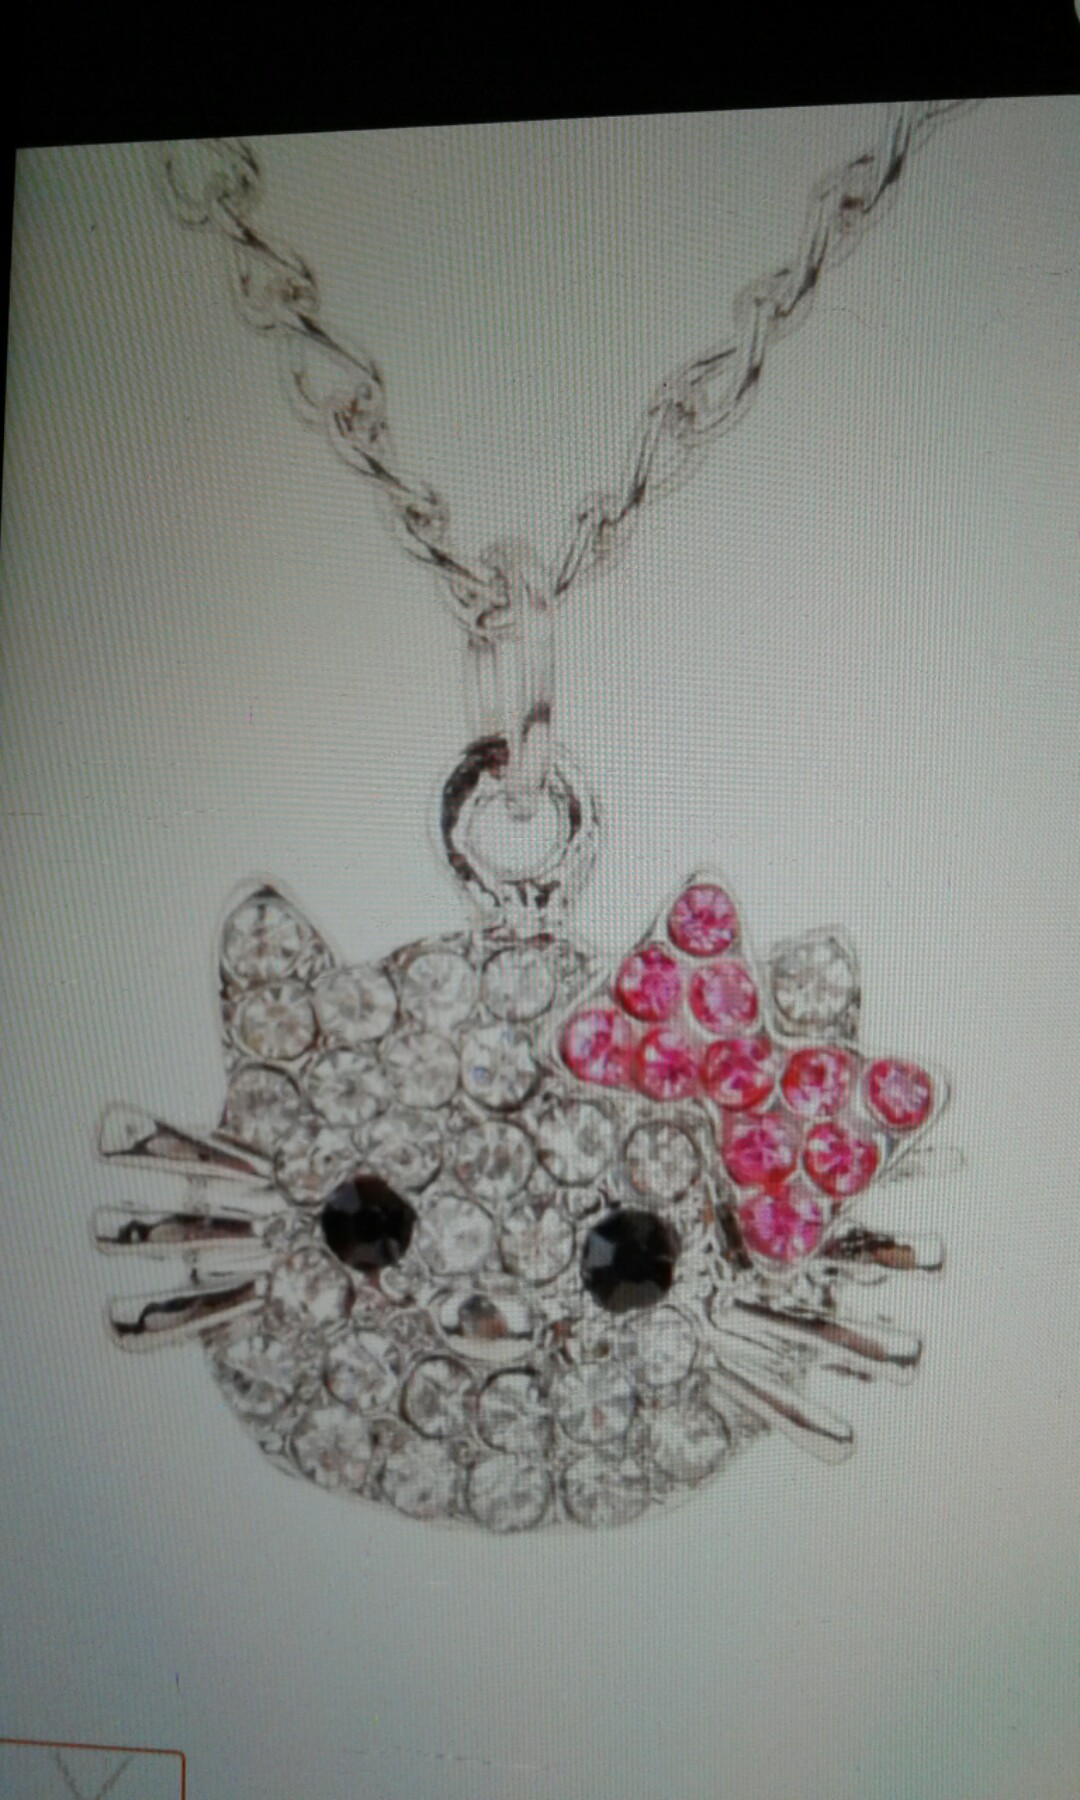 481a6af068132 New Fashion Crystal Cat Rhinestone Hello Kitty Necklace Bowknot KT Jewelry